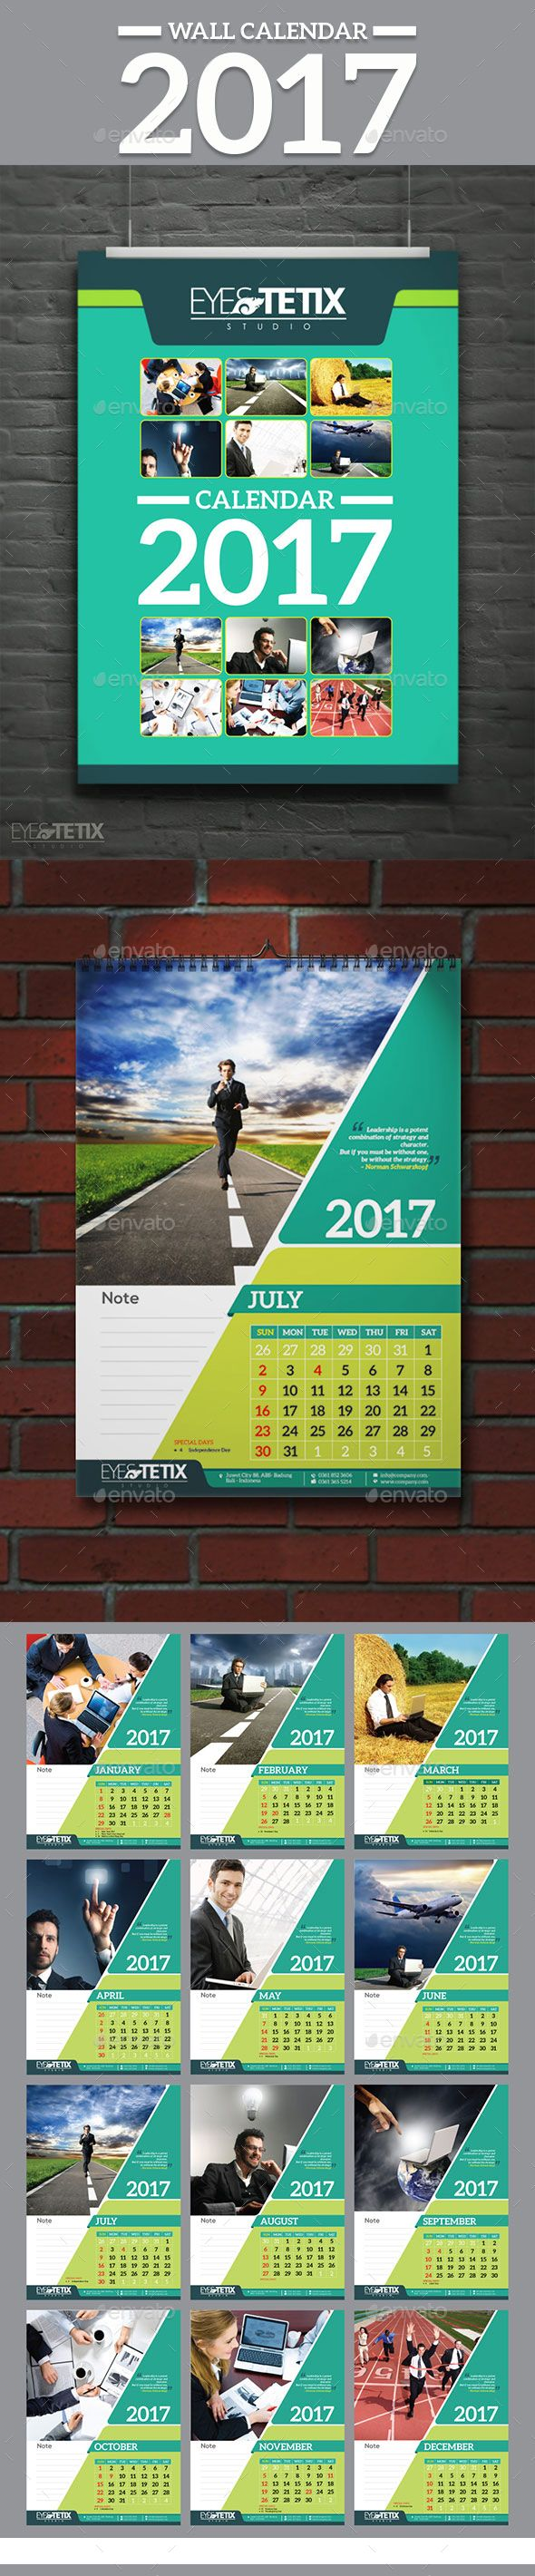 Wall Calendar 2017 Template Vector EPS, AI Illustrator